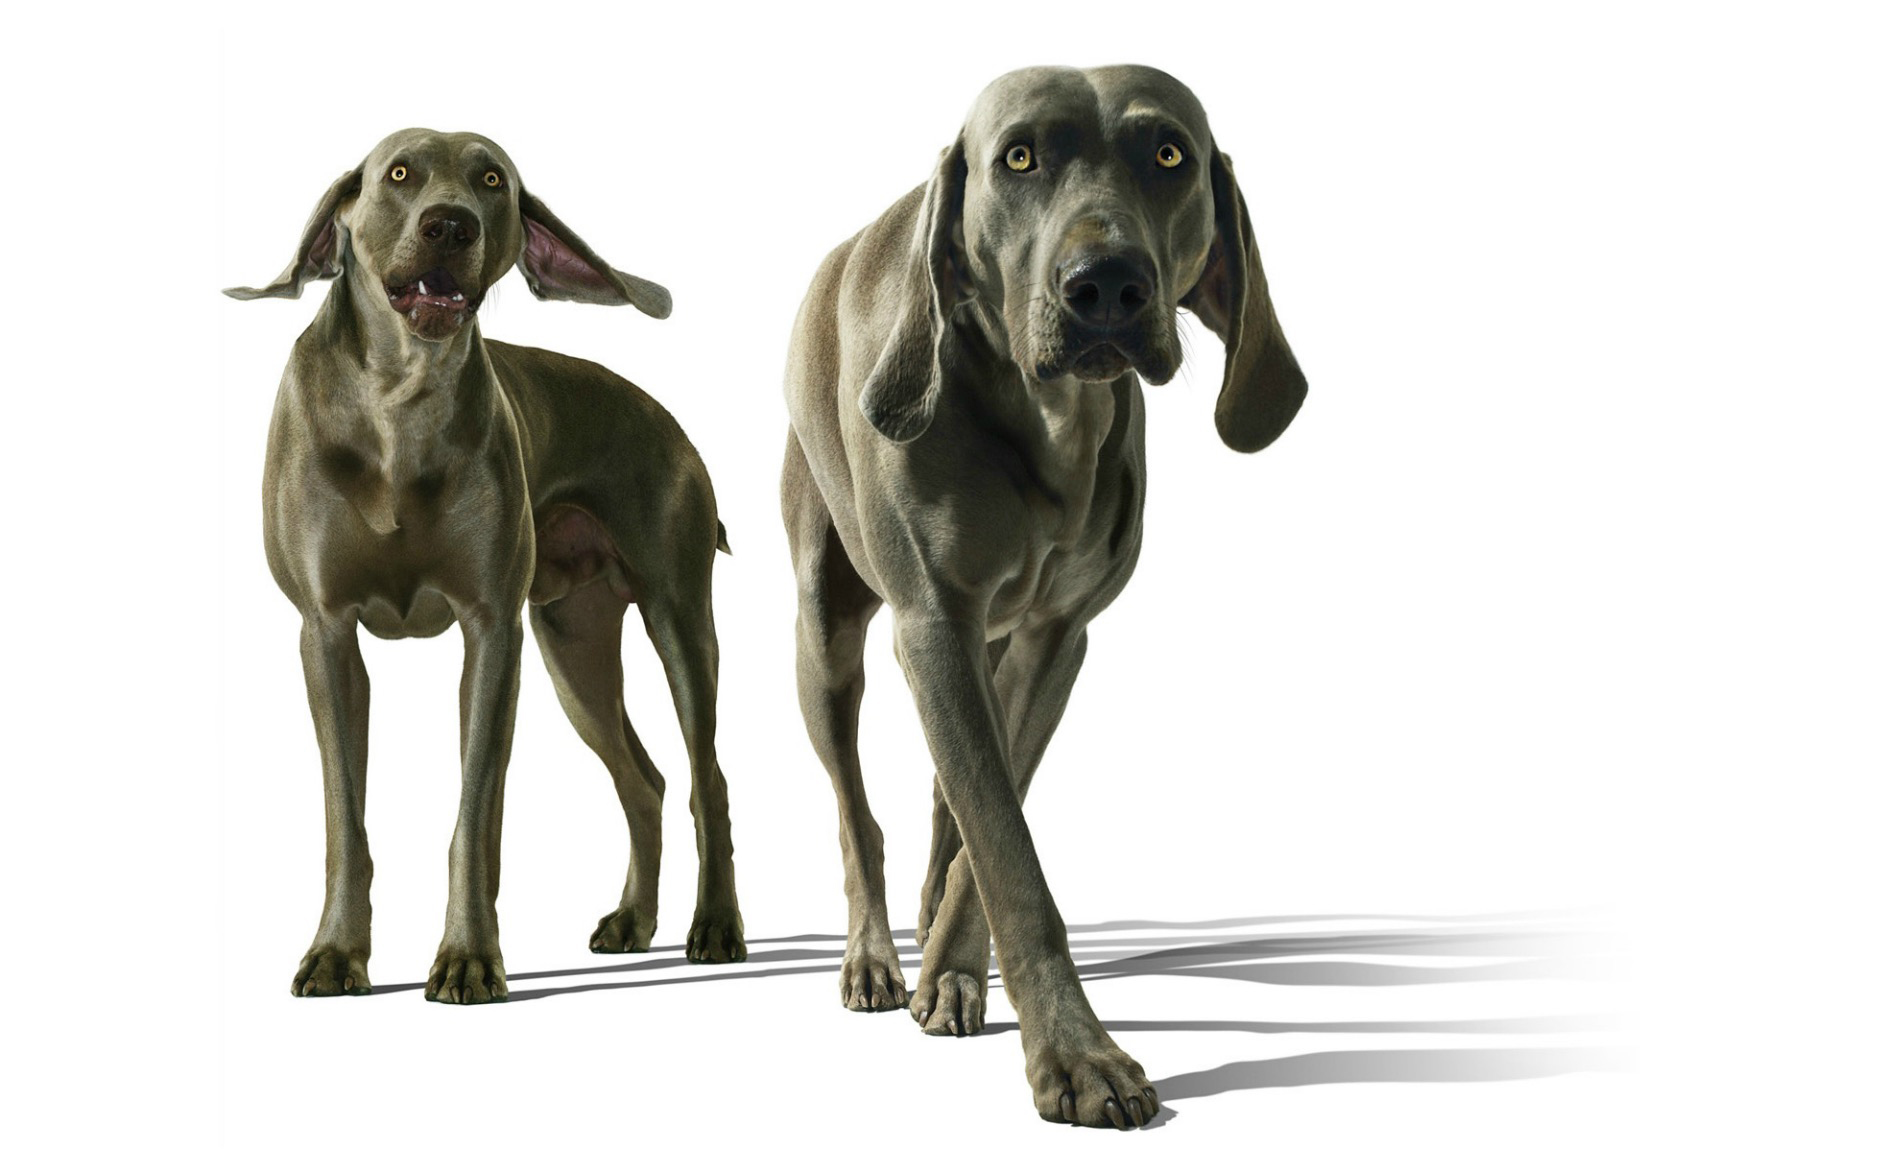 Two weimeraner retrievers against white background, close-up Copyright Gandee Vasan